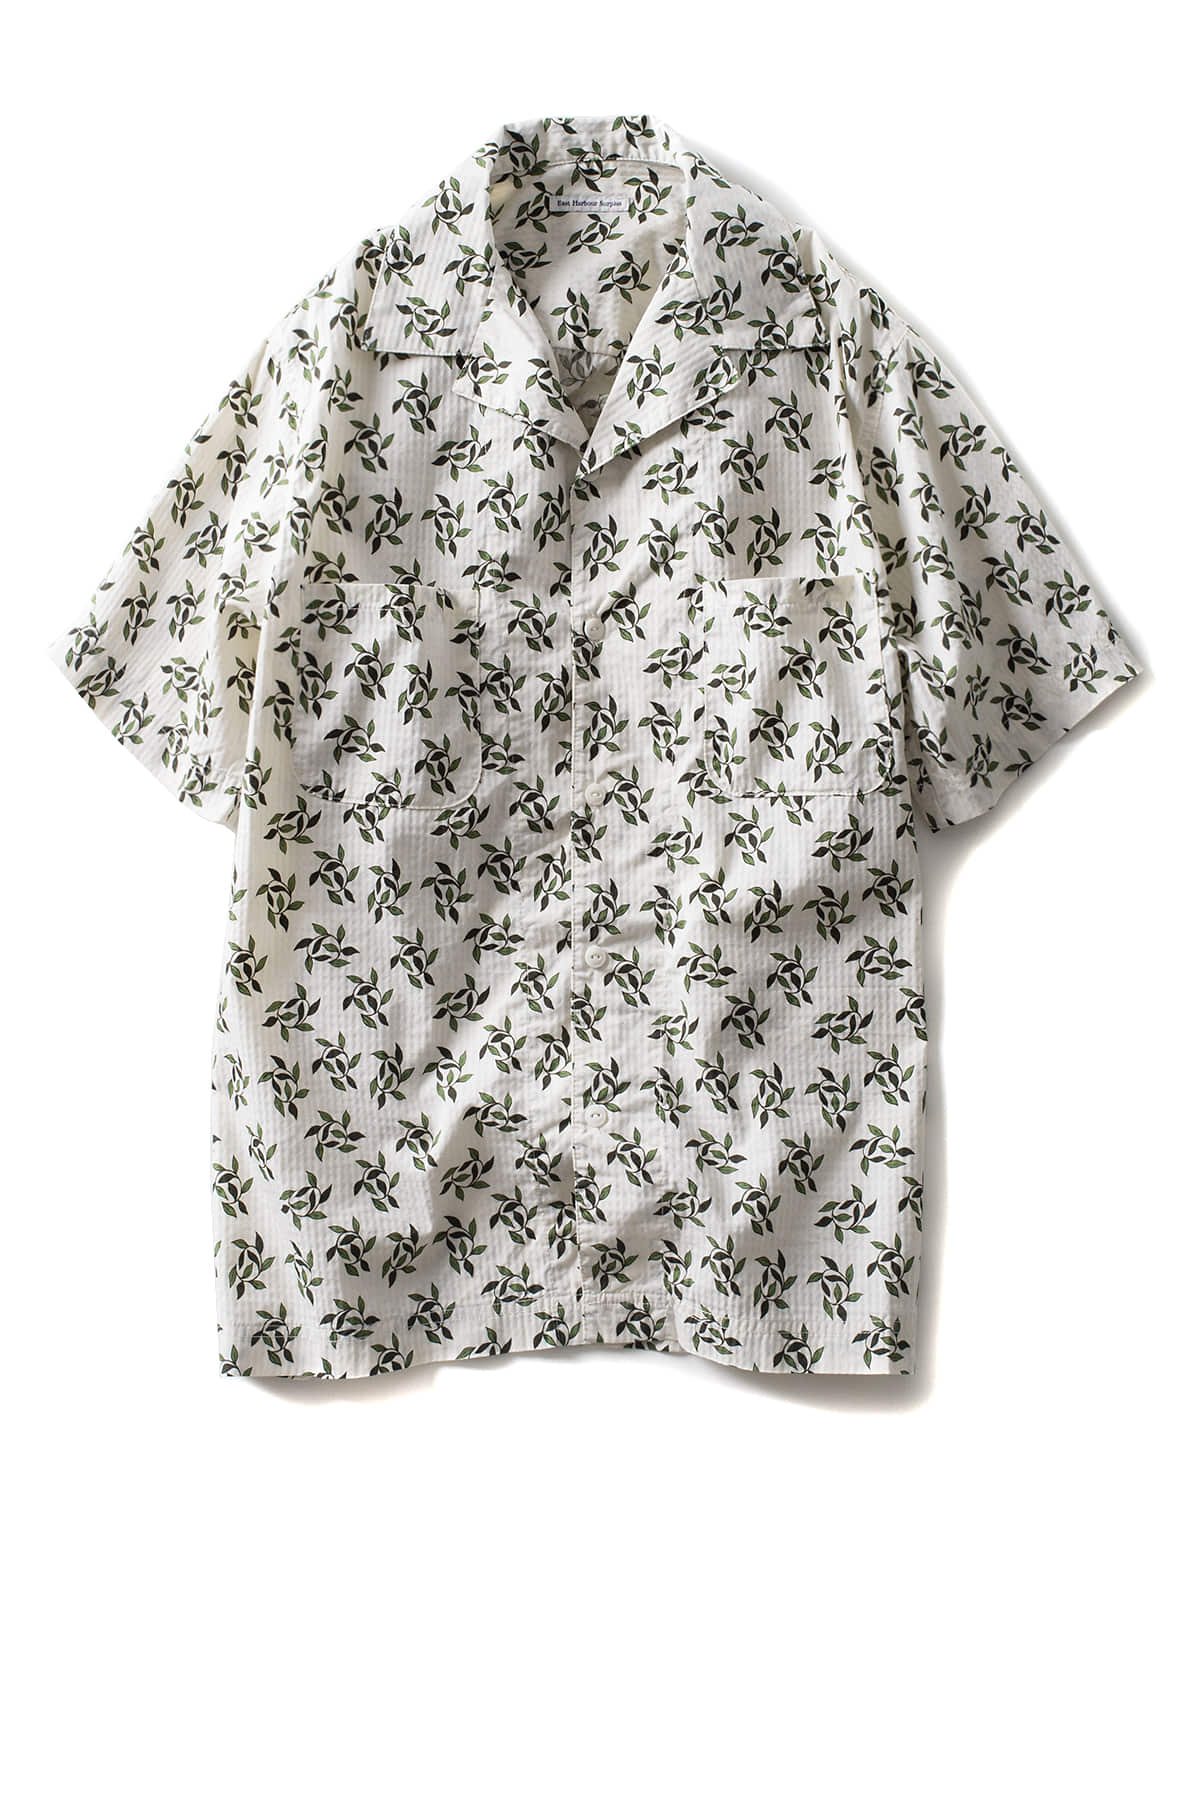 East Harbour Surplus : Miami Shirt (Botanic)